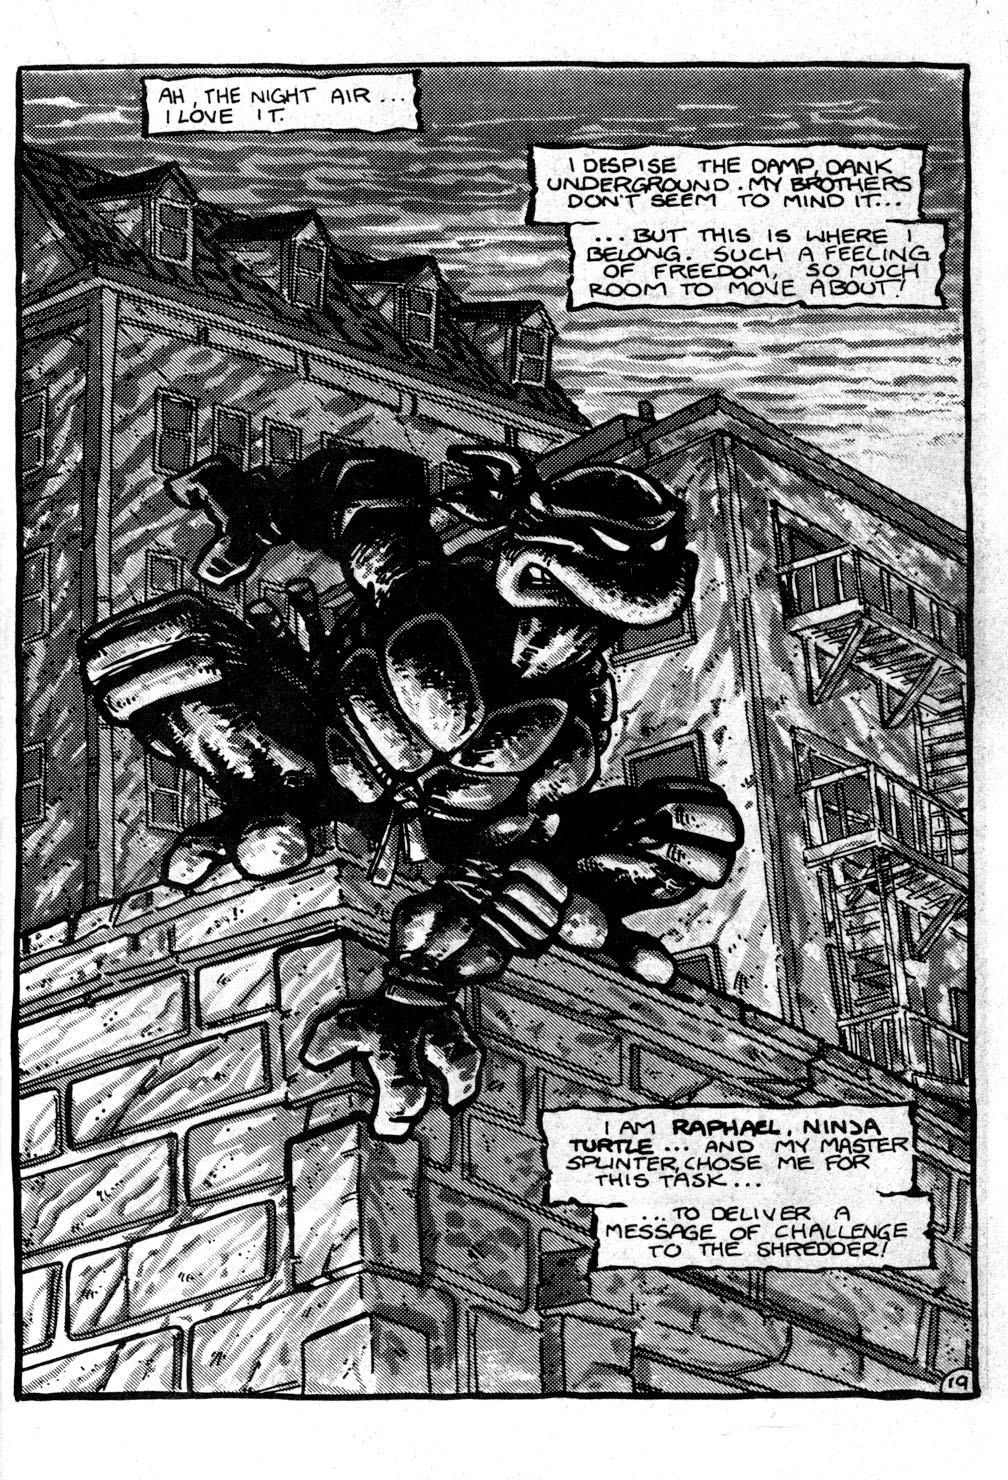 TMNT (issue 1, p. 20)